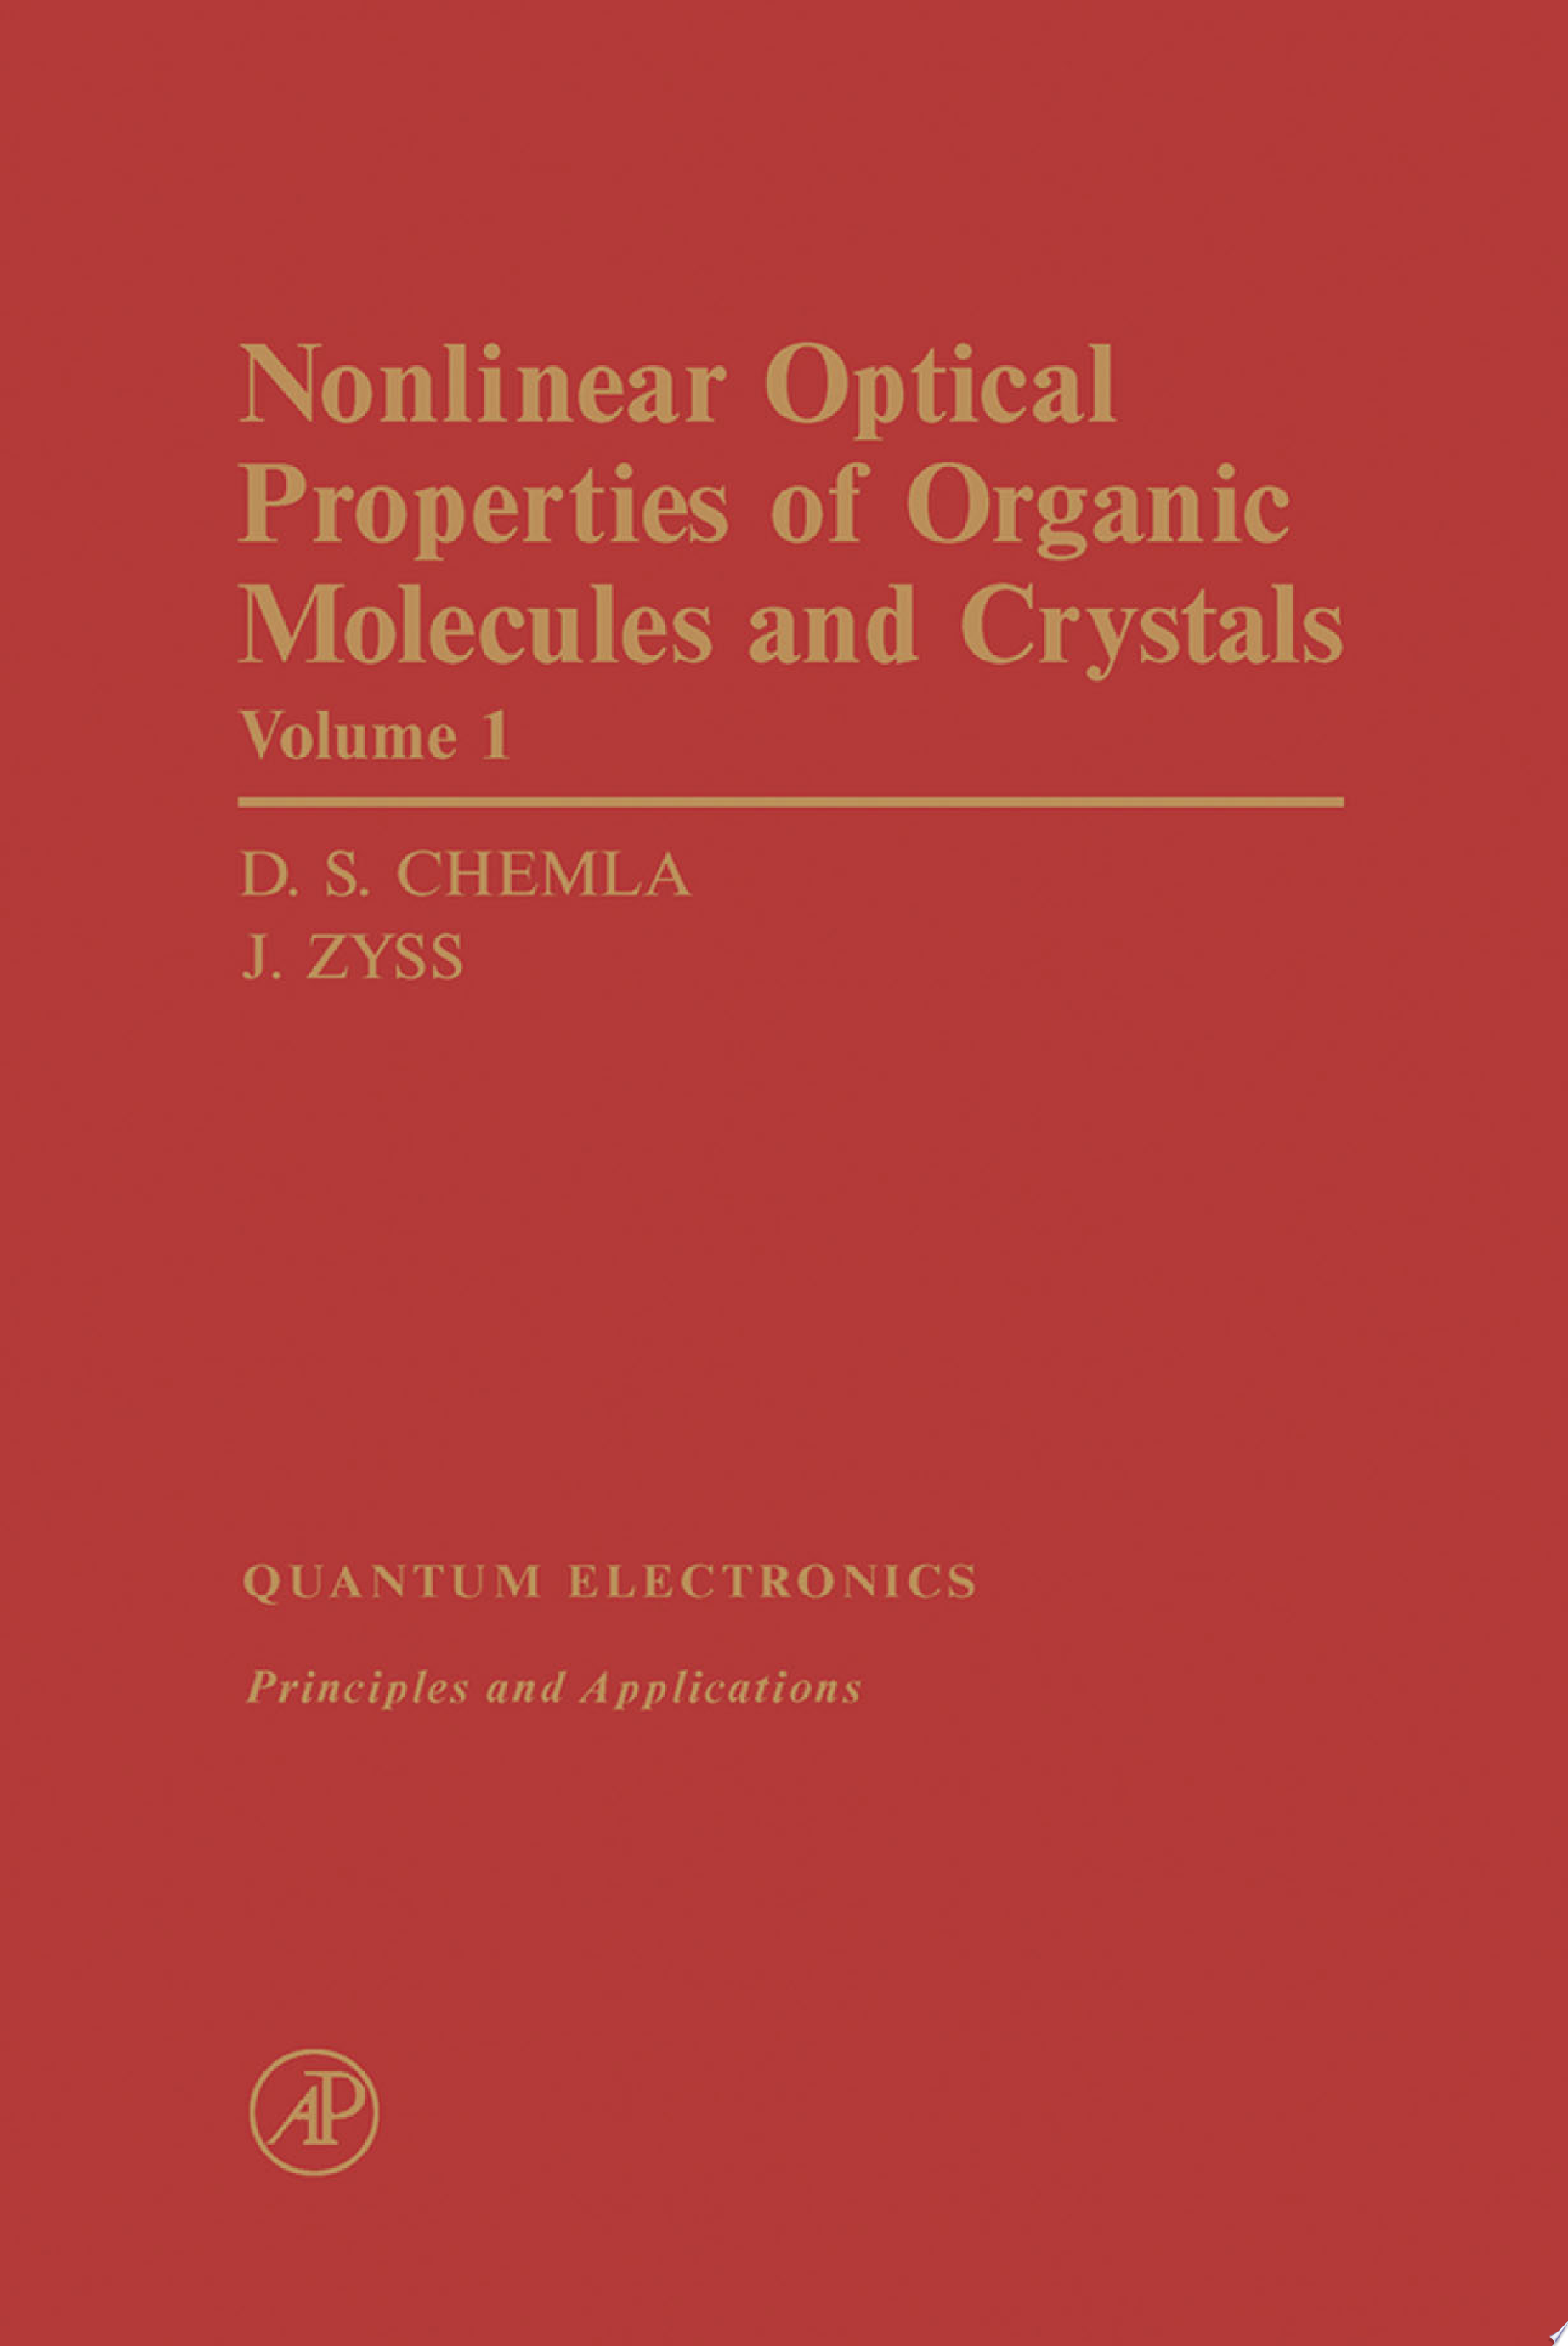 Nonlinear Optical Properties of Organic Molecules and Crystals